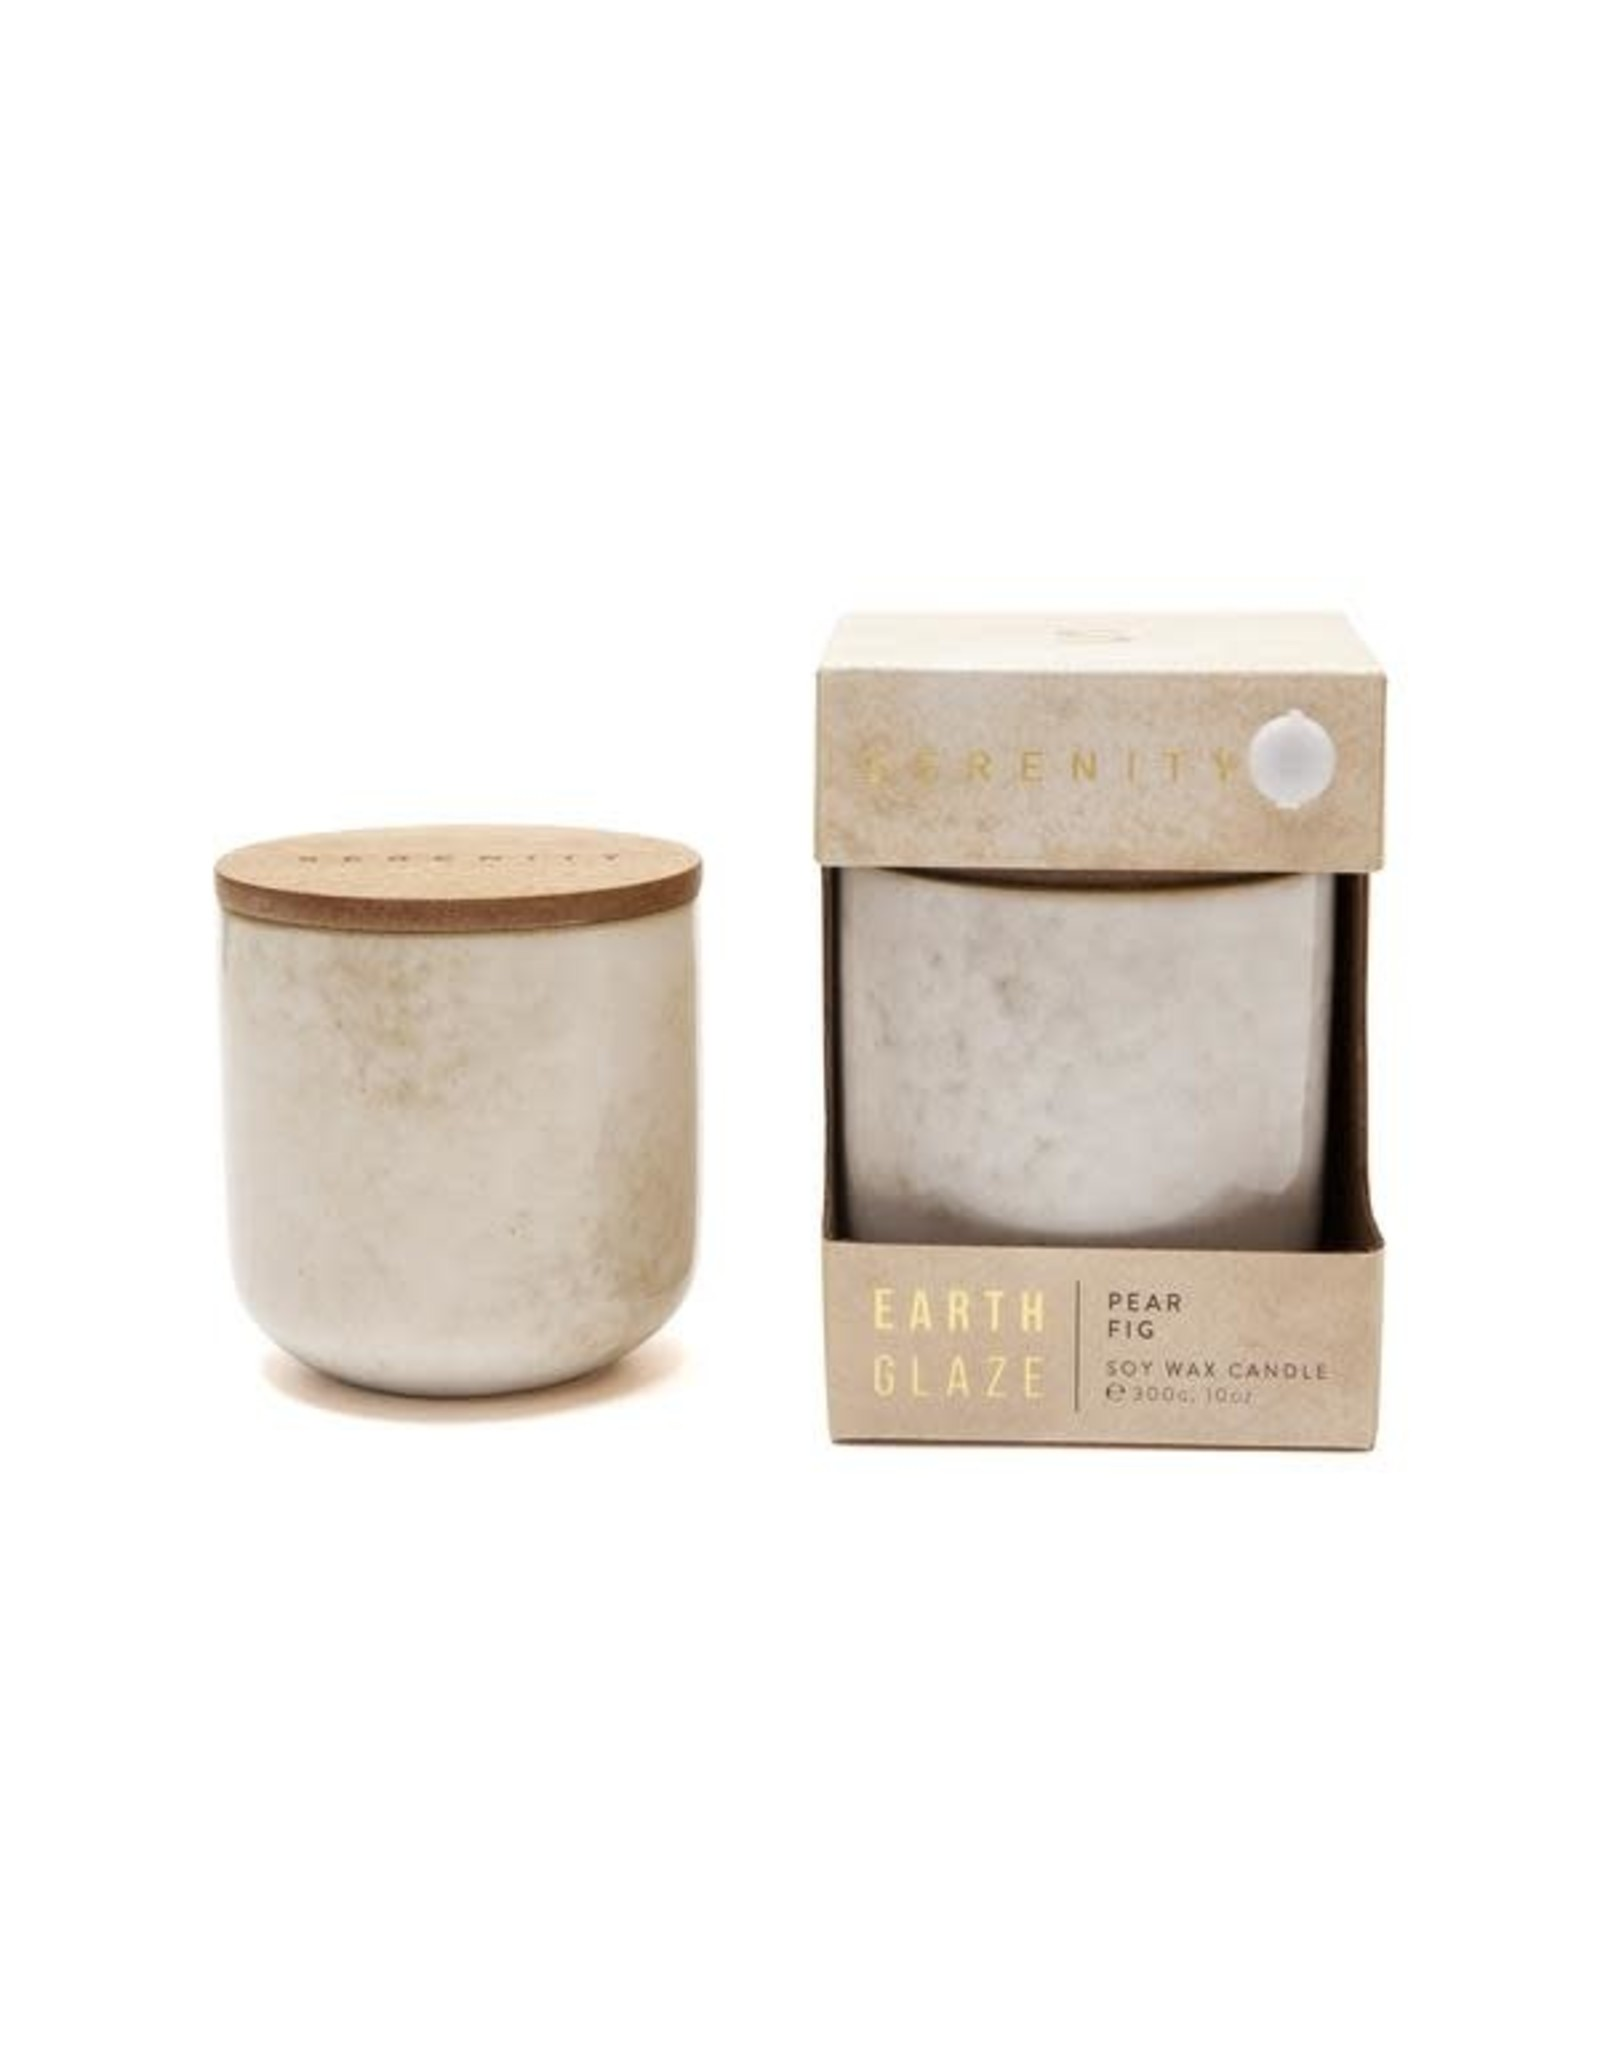 Earth Glaze Scented Candle - Pear Fig - 10oz